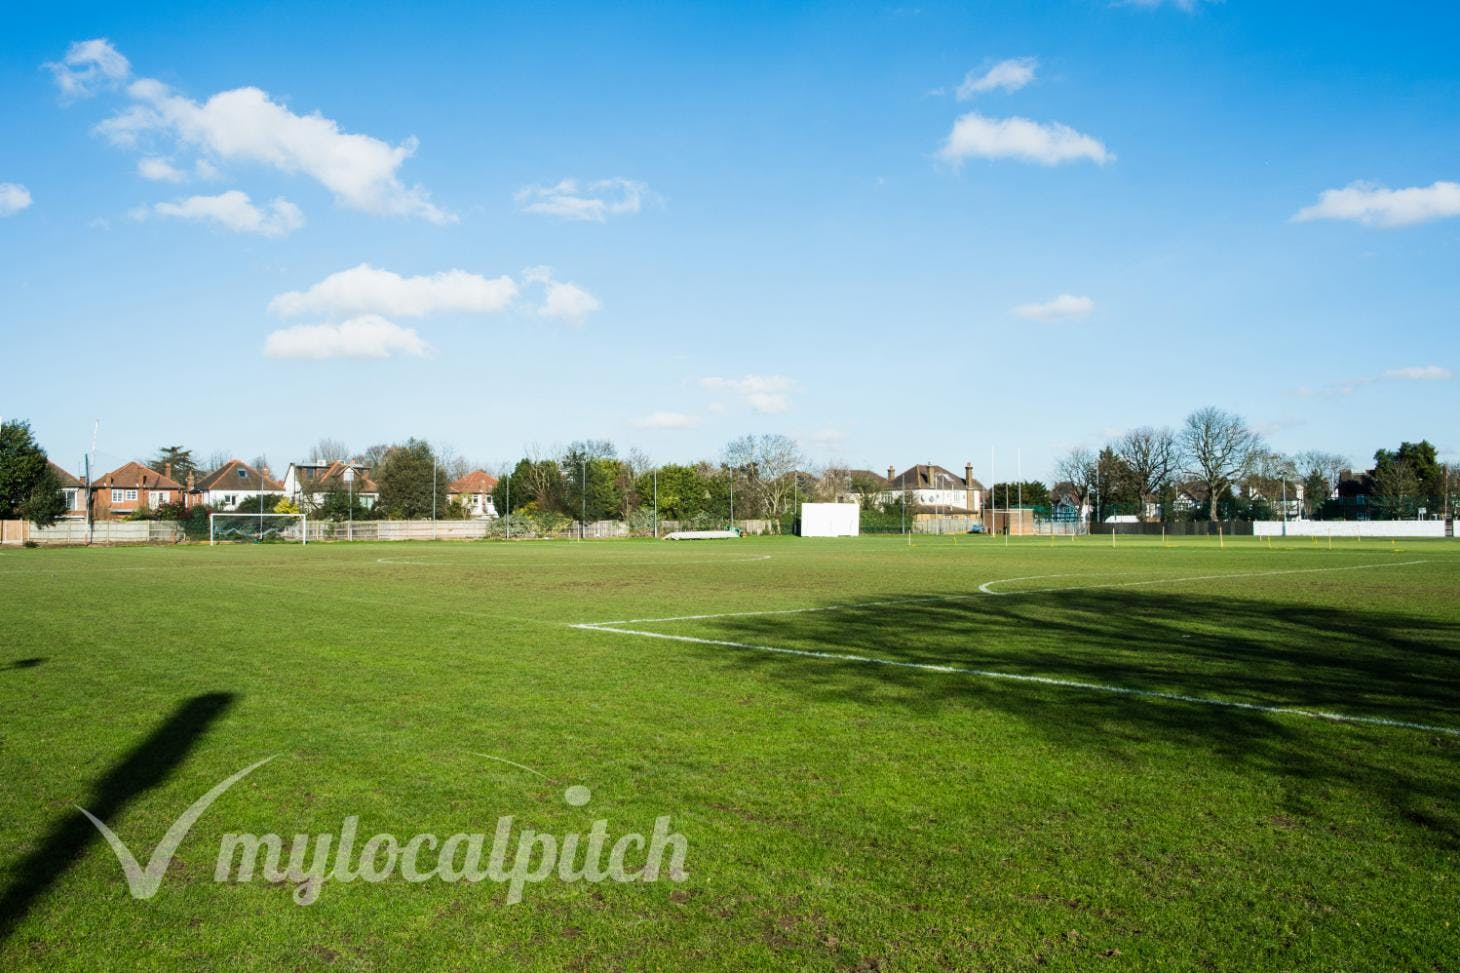 Old Actonians Association 11 a side | Grass football pitch